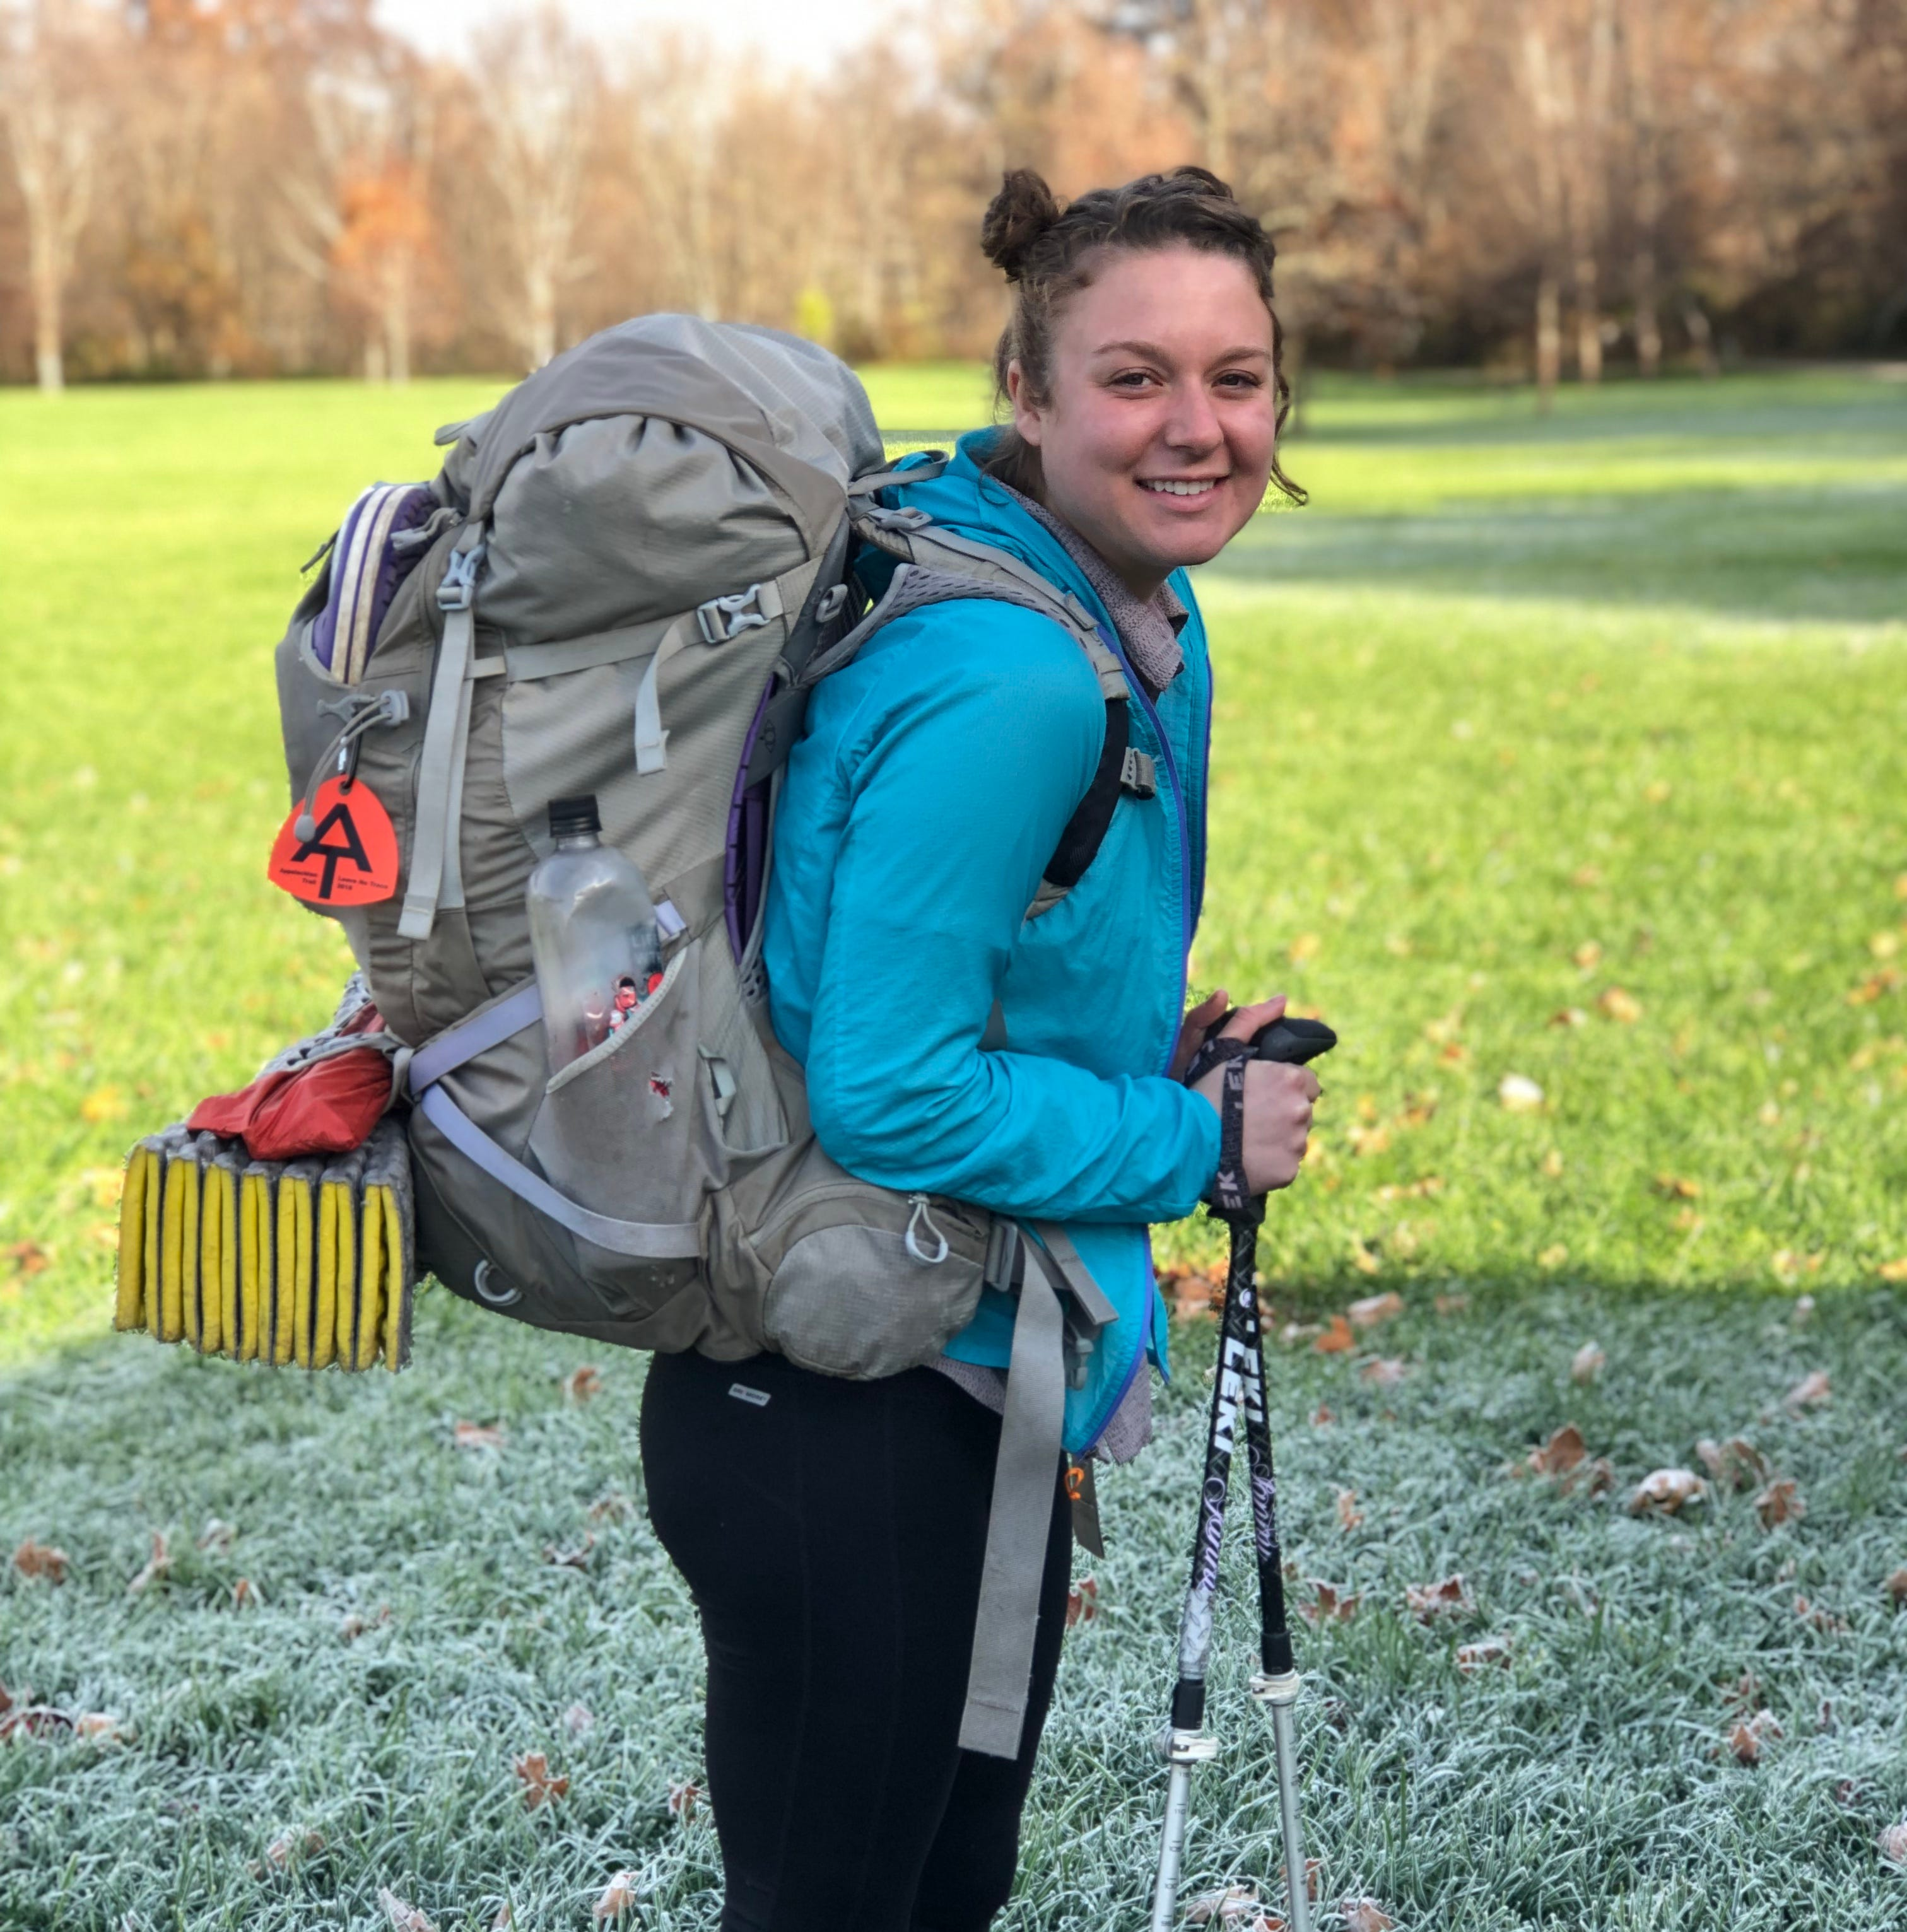 Appalachian Trail offers gifts beyond measure